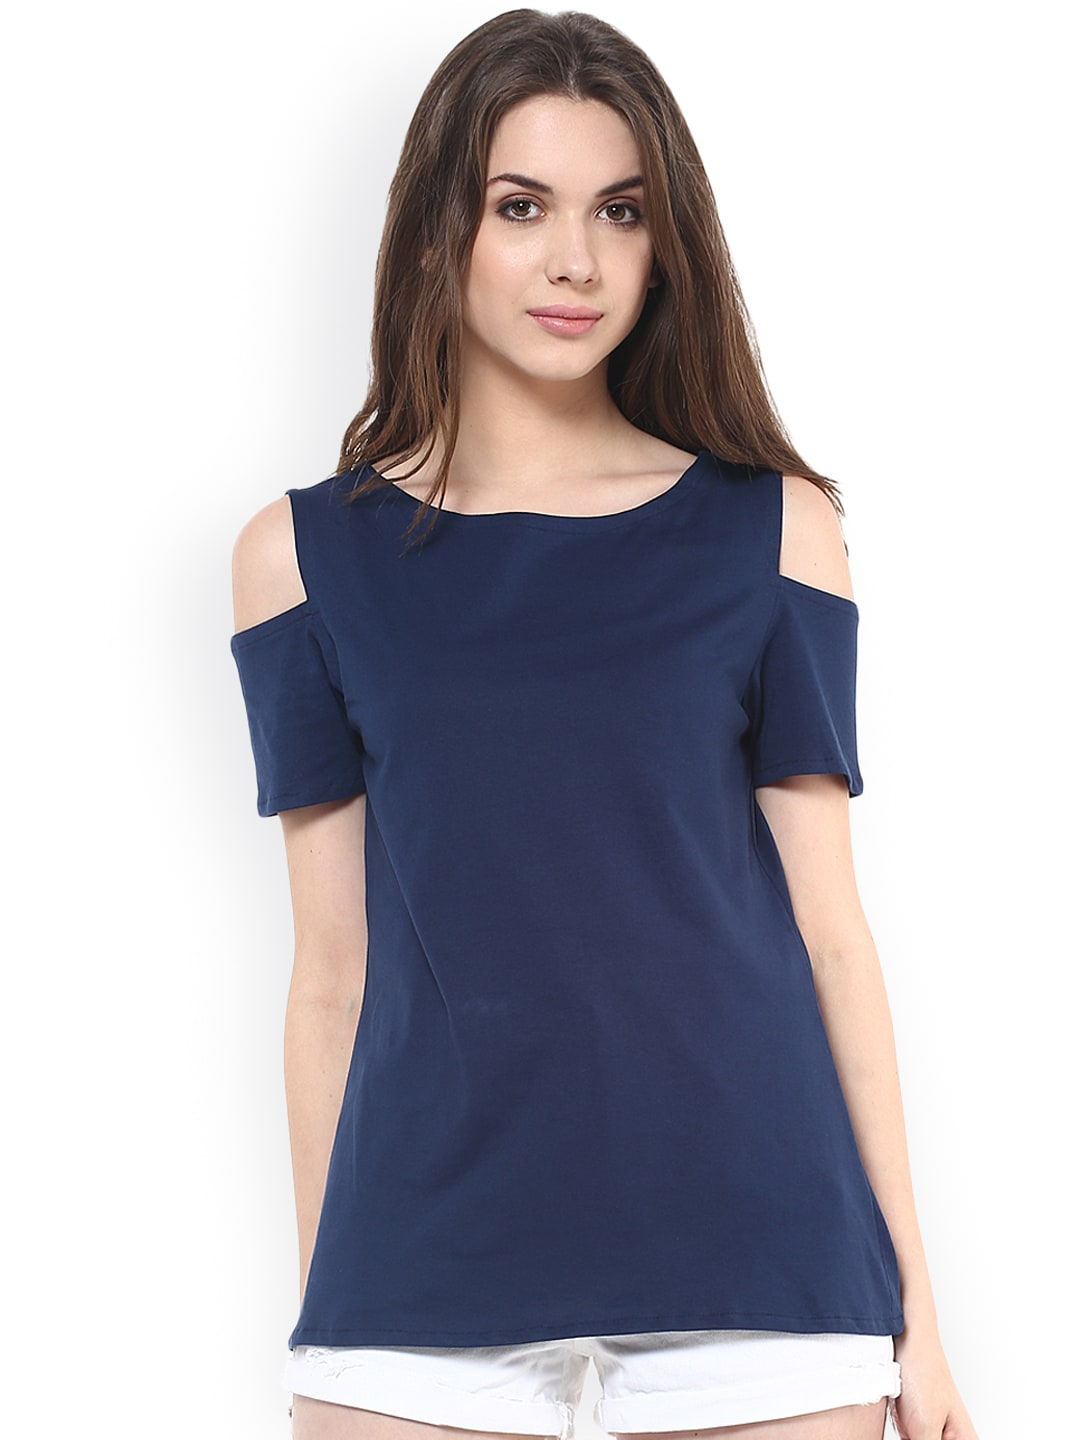 33bcad3815f Cut Sleeves Blue Tops - Buy Cut Sleeves Blue Tops online in India